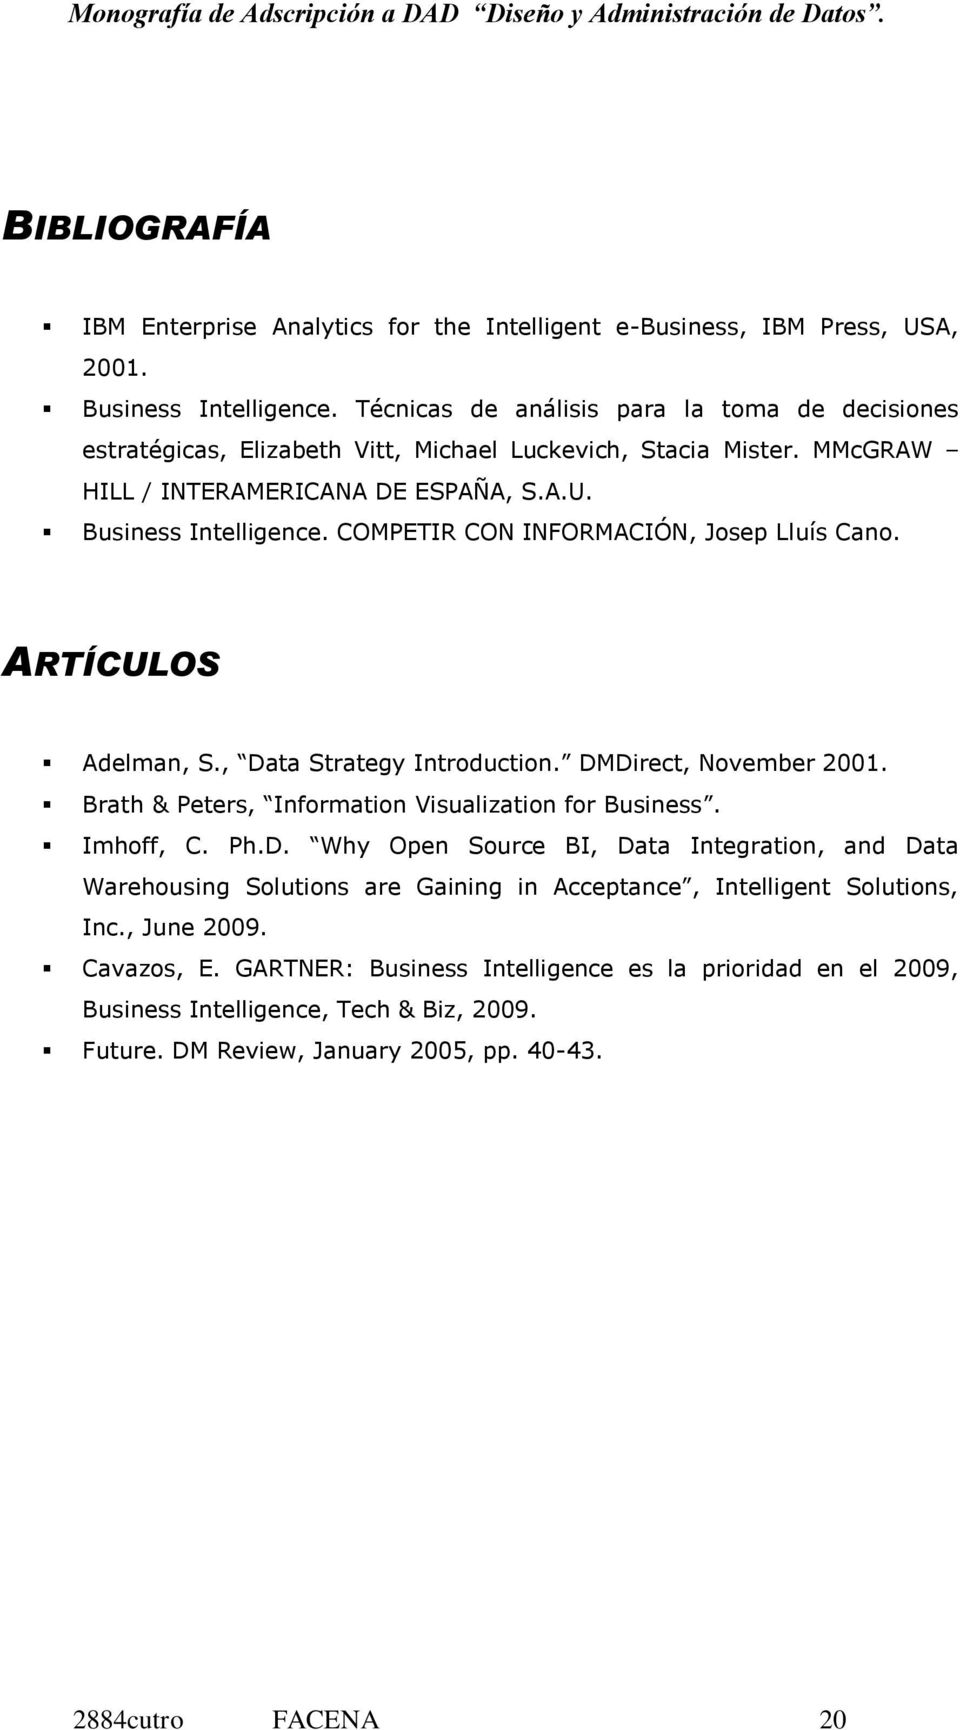 COMPETIR CON INFORMACIÓN, Josep Lluís Cano. ARTÍCULOS Adelman, S., Data Strategy Introduction. DMDirect, November 2001. Brath & Peters, Information Visualization for Business. Imhoff, C. Ph.D. Why Open Source BI, Data Integration, and Data Warehousing Solutions are Gaining in Acceptance, Intelligent Solutions, Inc.